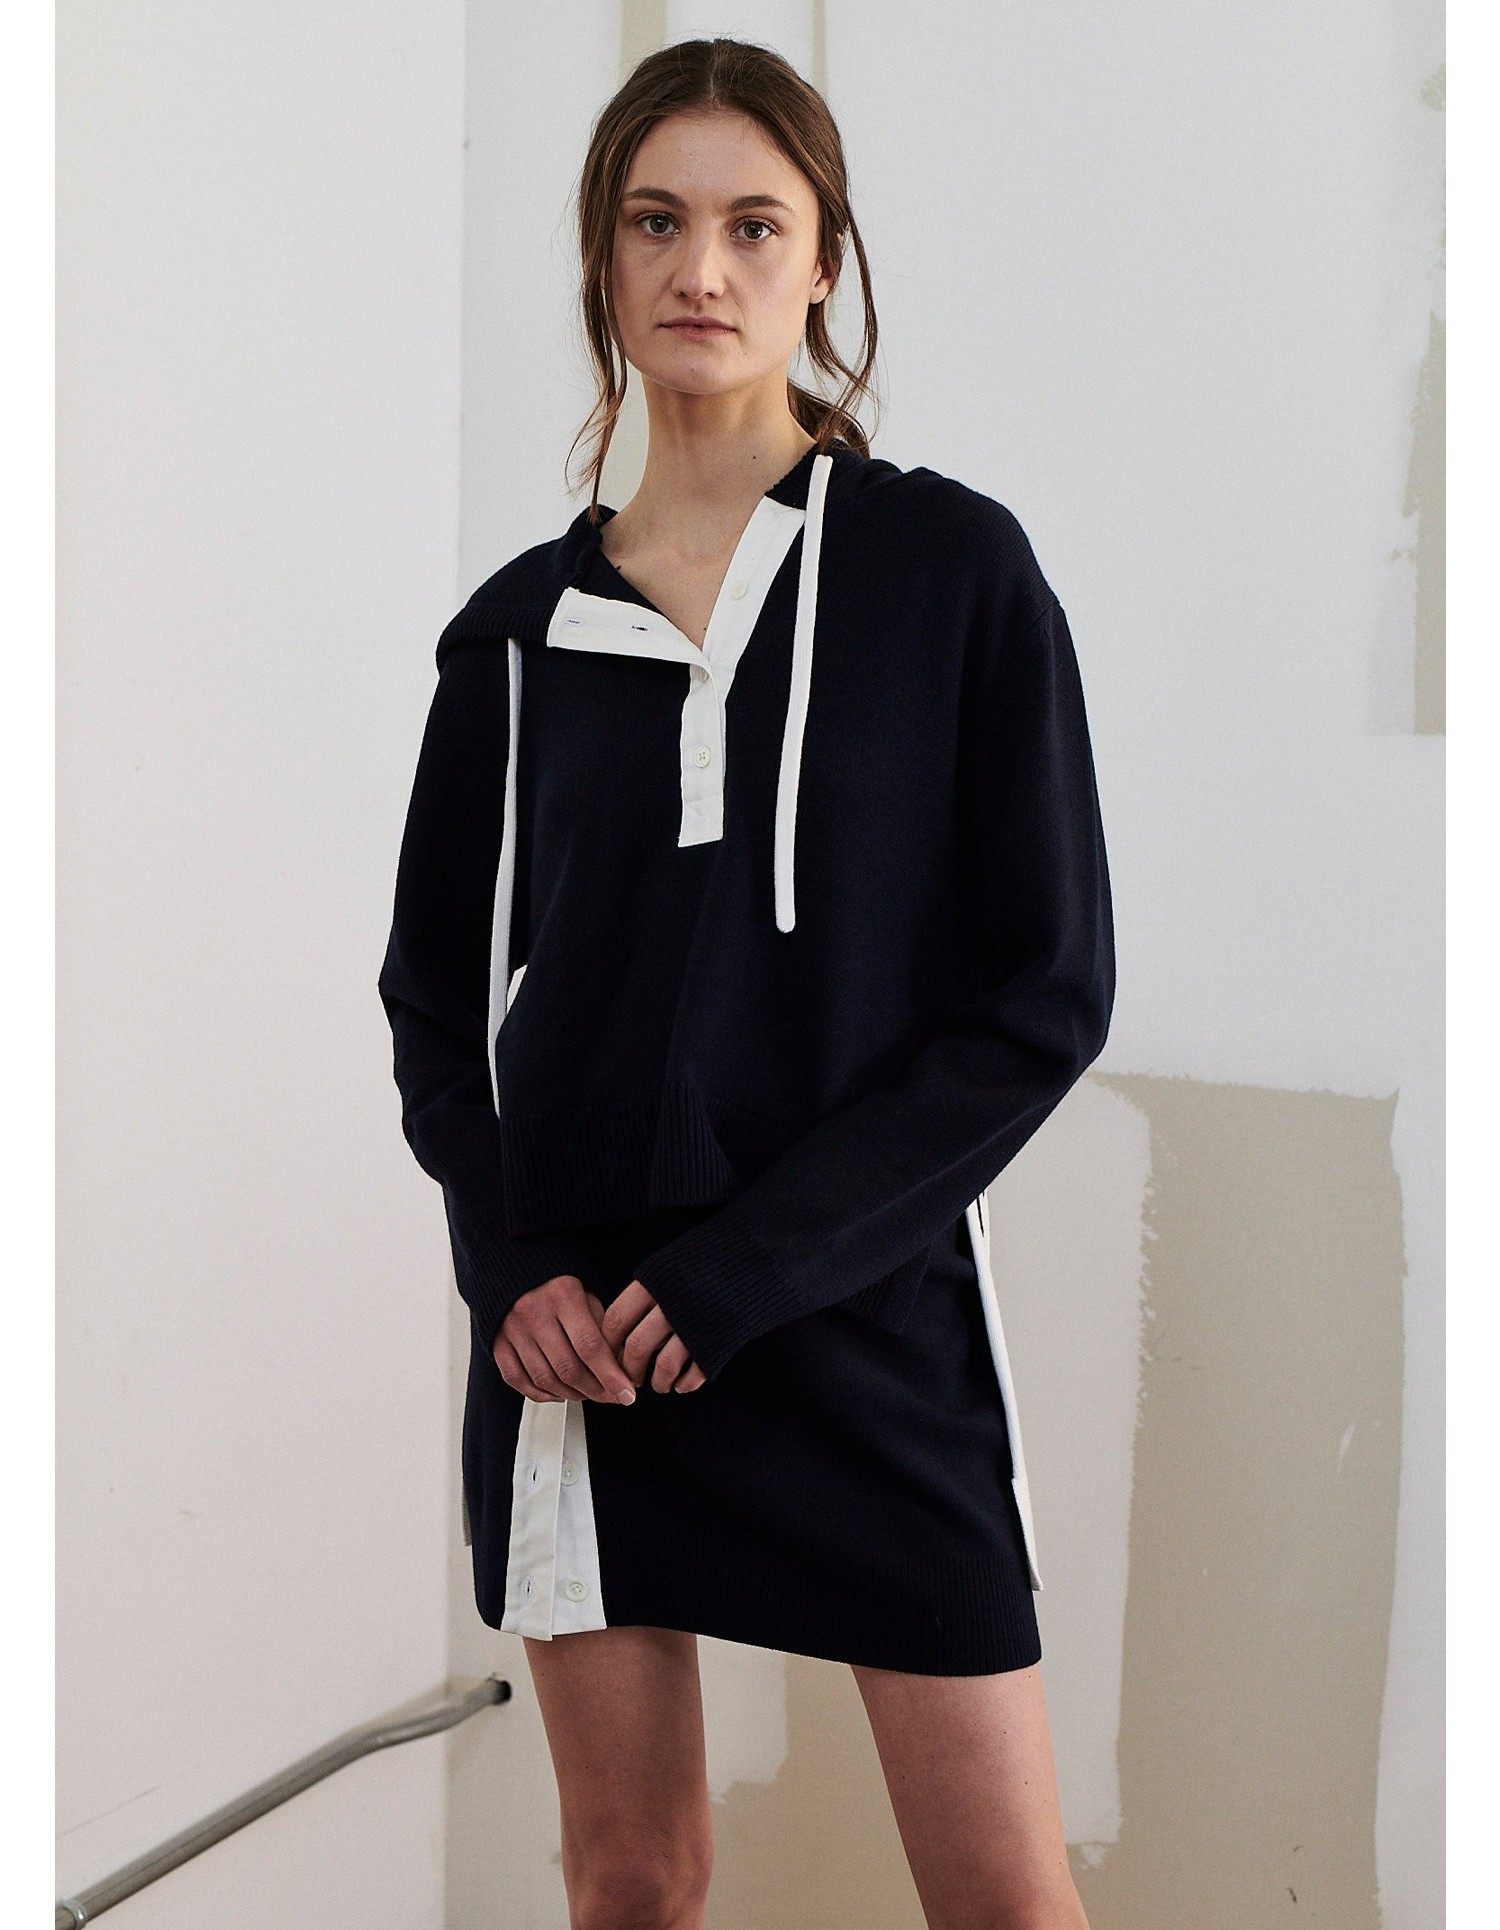 MONSE Rugby Knit Hoodie in Midnight and Ivory on Model Front View